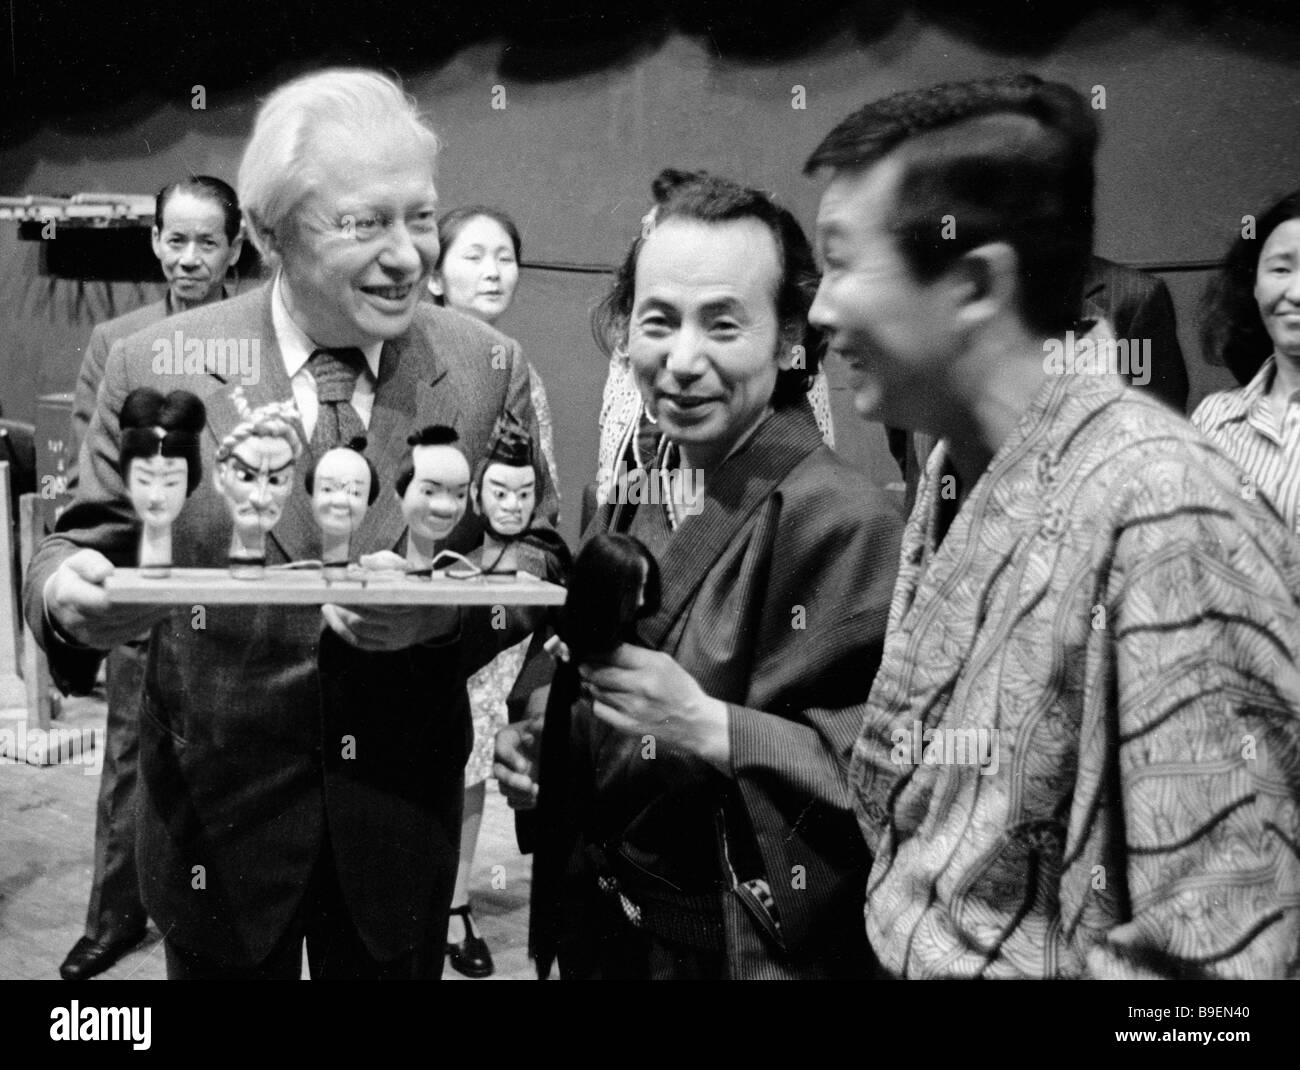 Japanese puppeteers presenting Sergei Obraztsov a Russian puppet master left with Japanese puppets - Stock Image